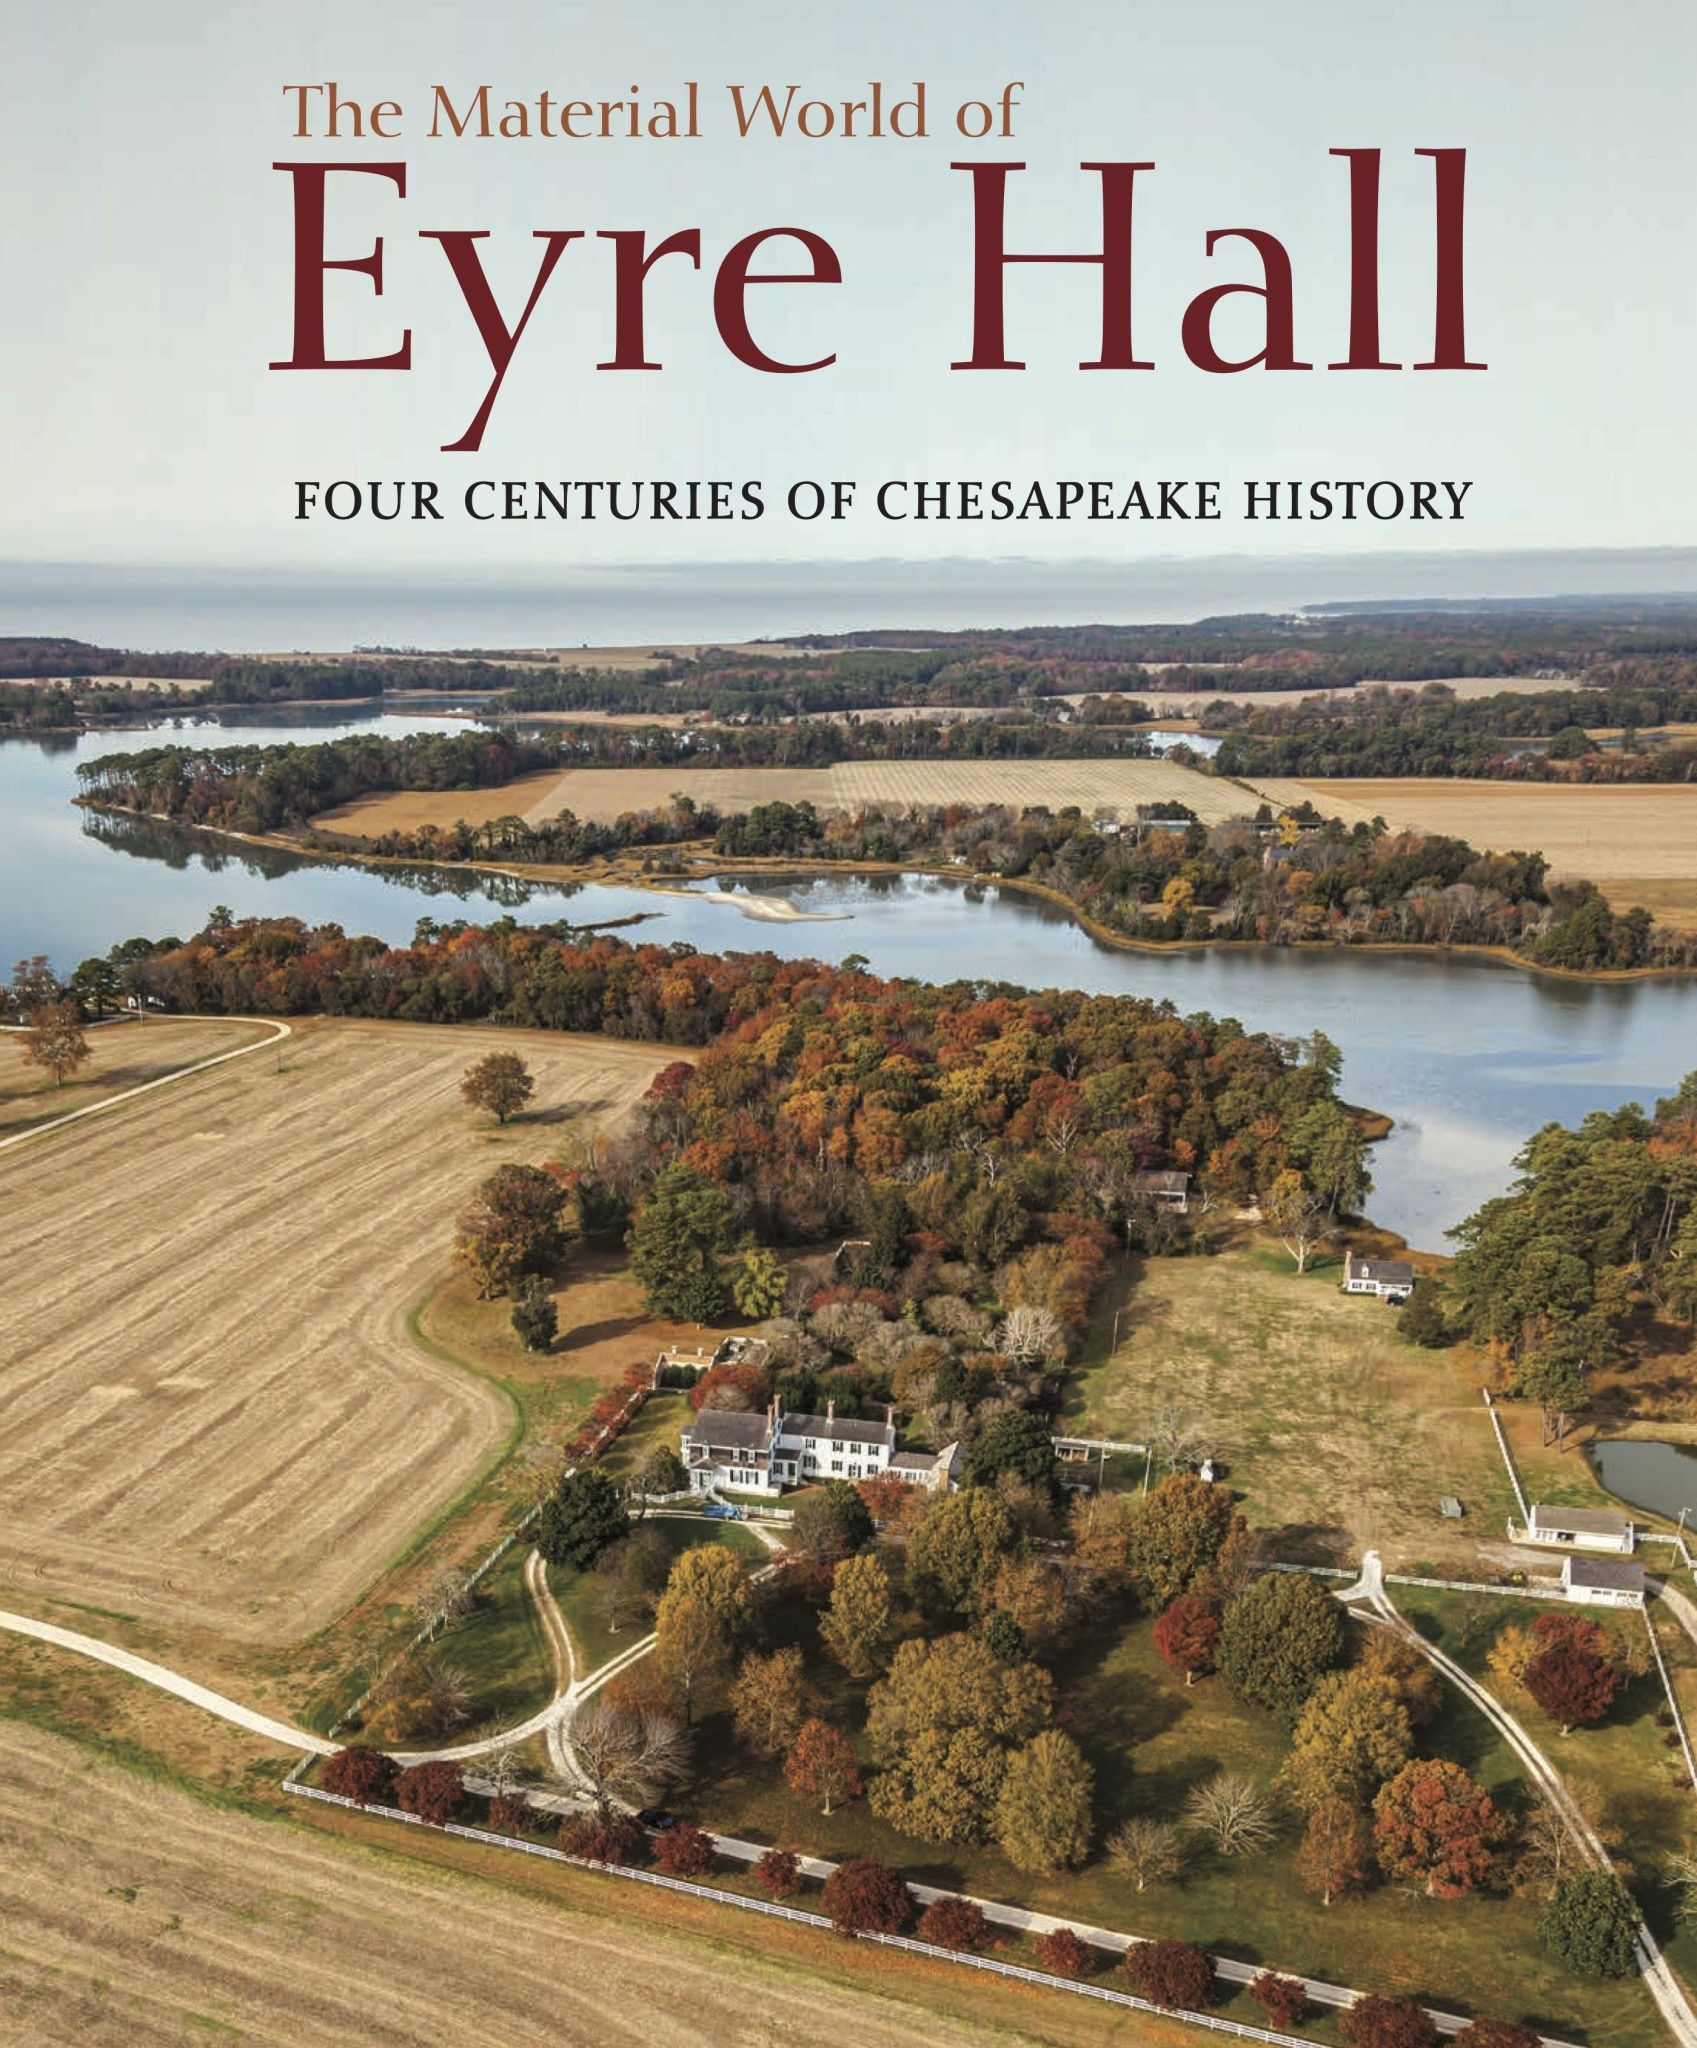 The Material World of Eyre Hall: Four Centuries of Chesapeake History Edited by Carl R. Lounsbury, Ph.D